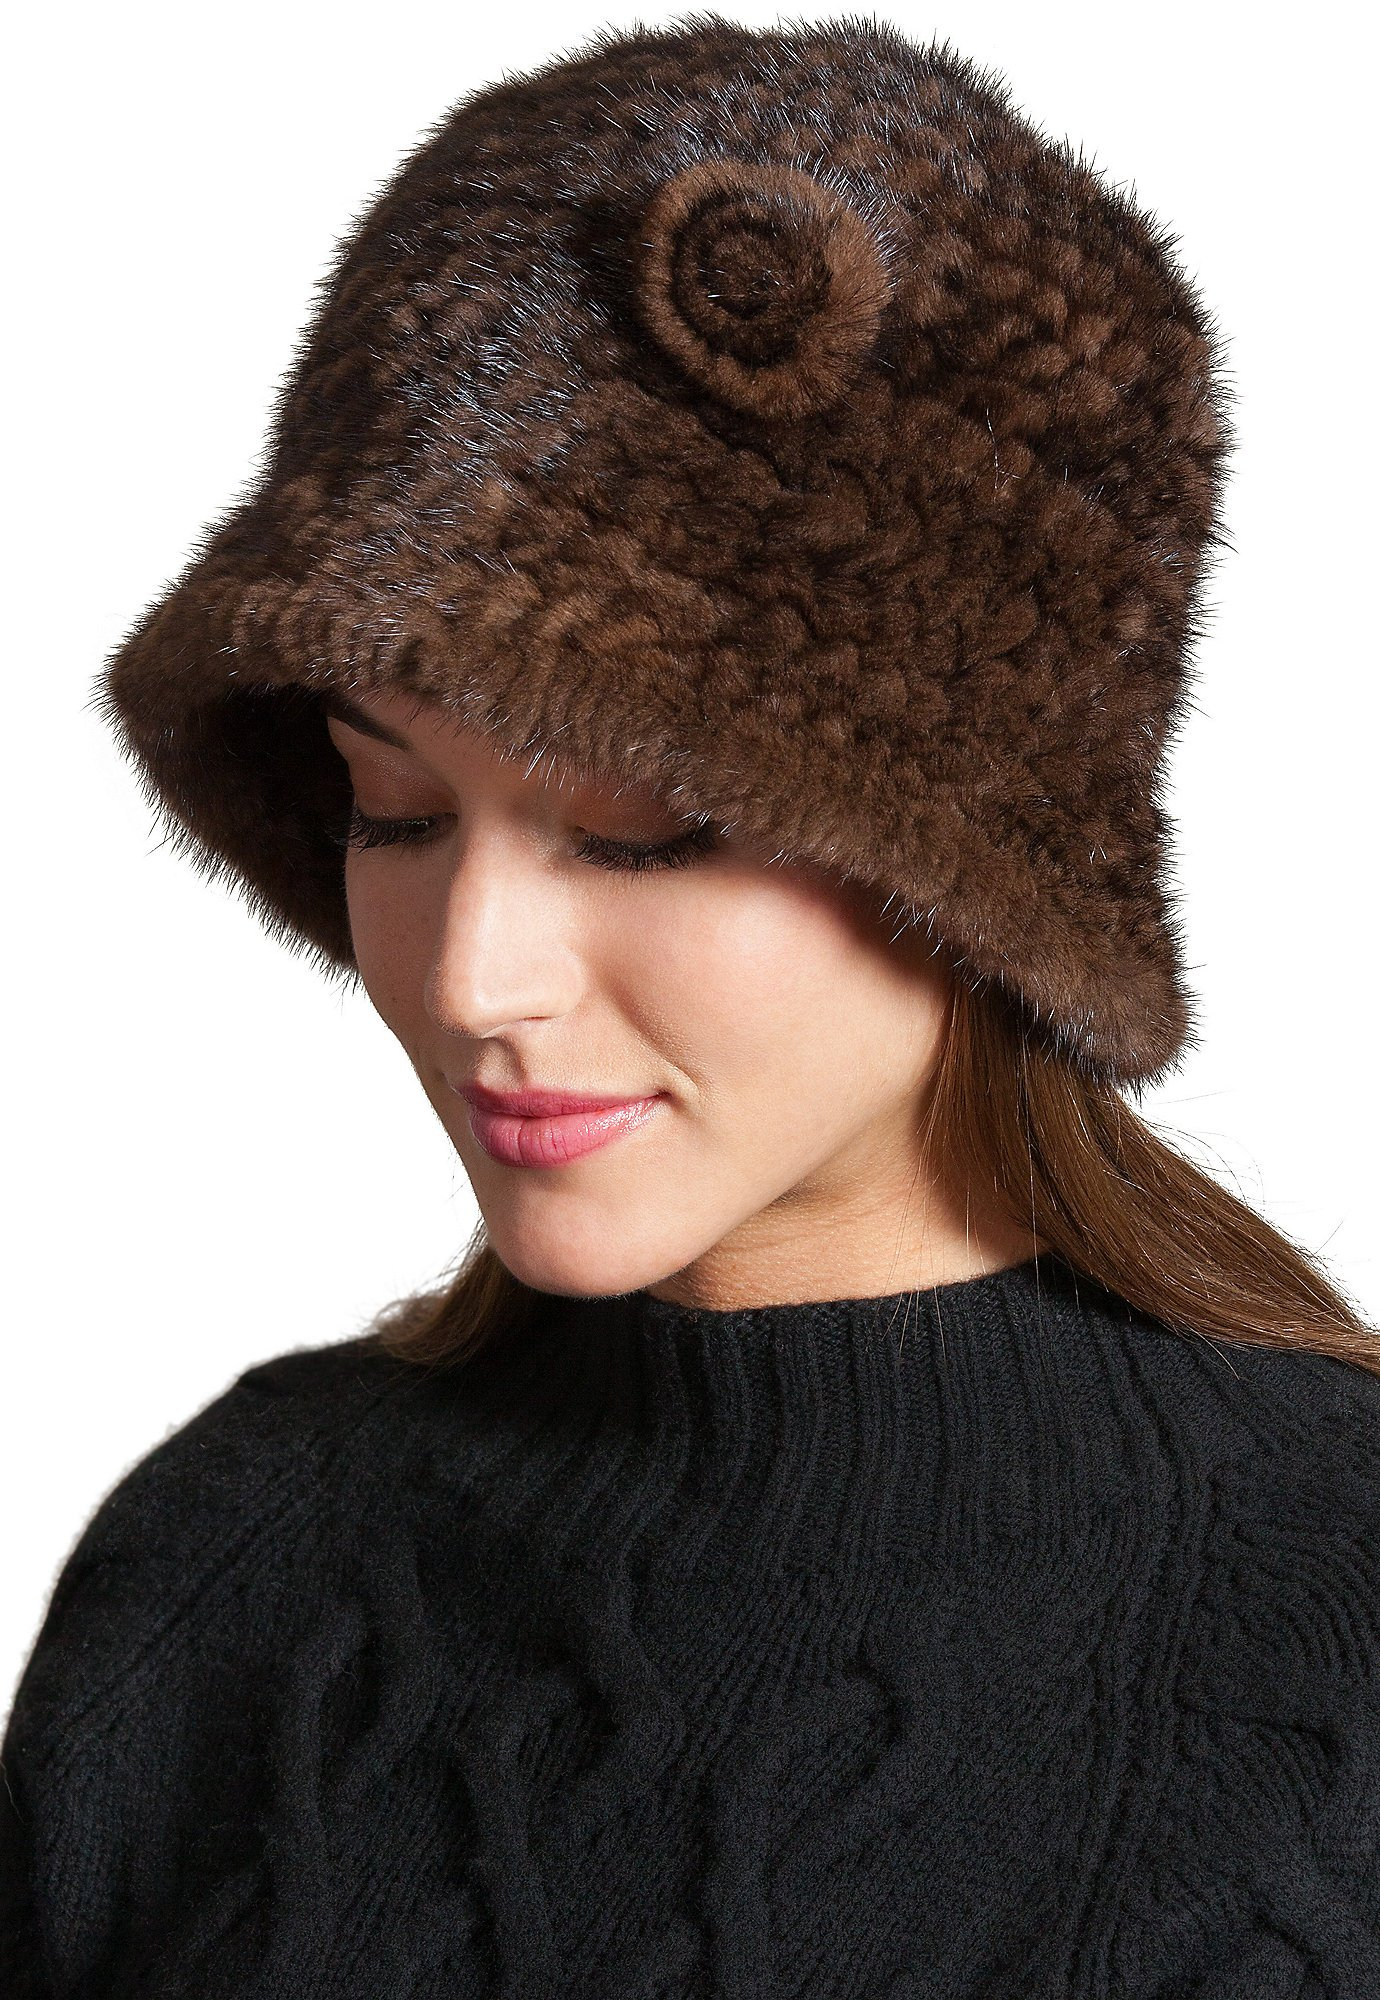 Overland Sheepskin Co. Knitted Danish Mink Fur Cloche Hat with Removable Floret